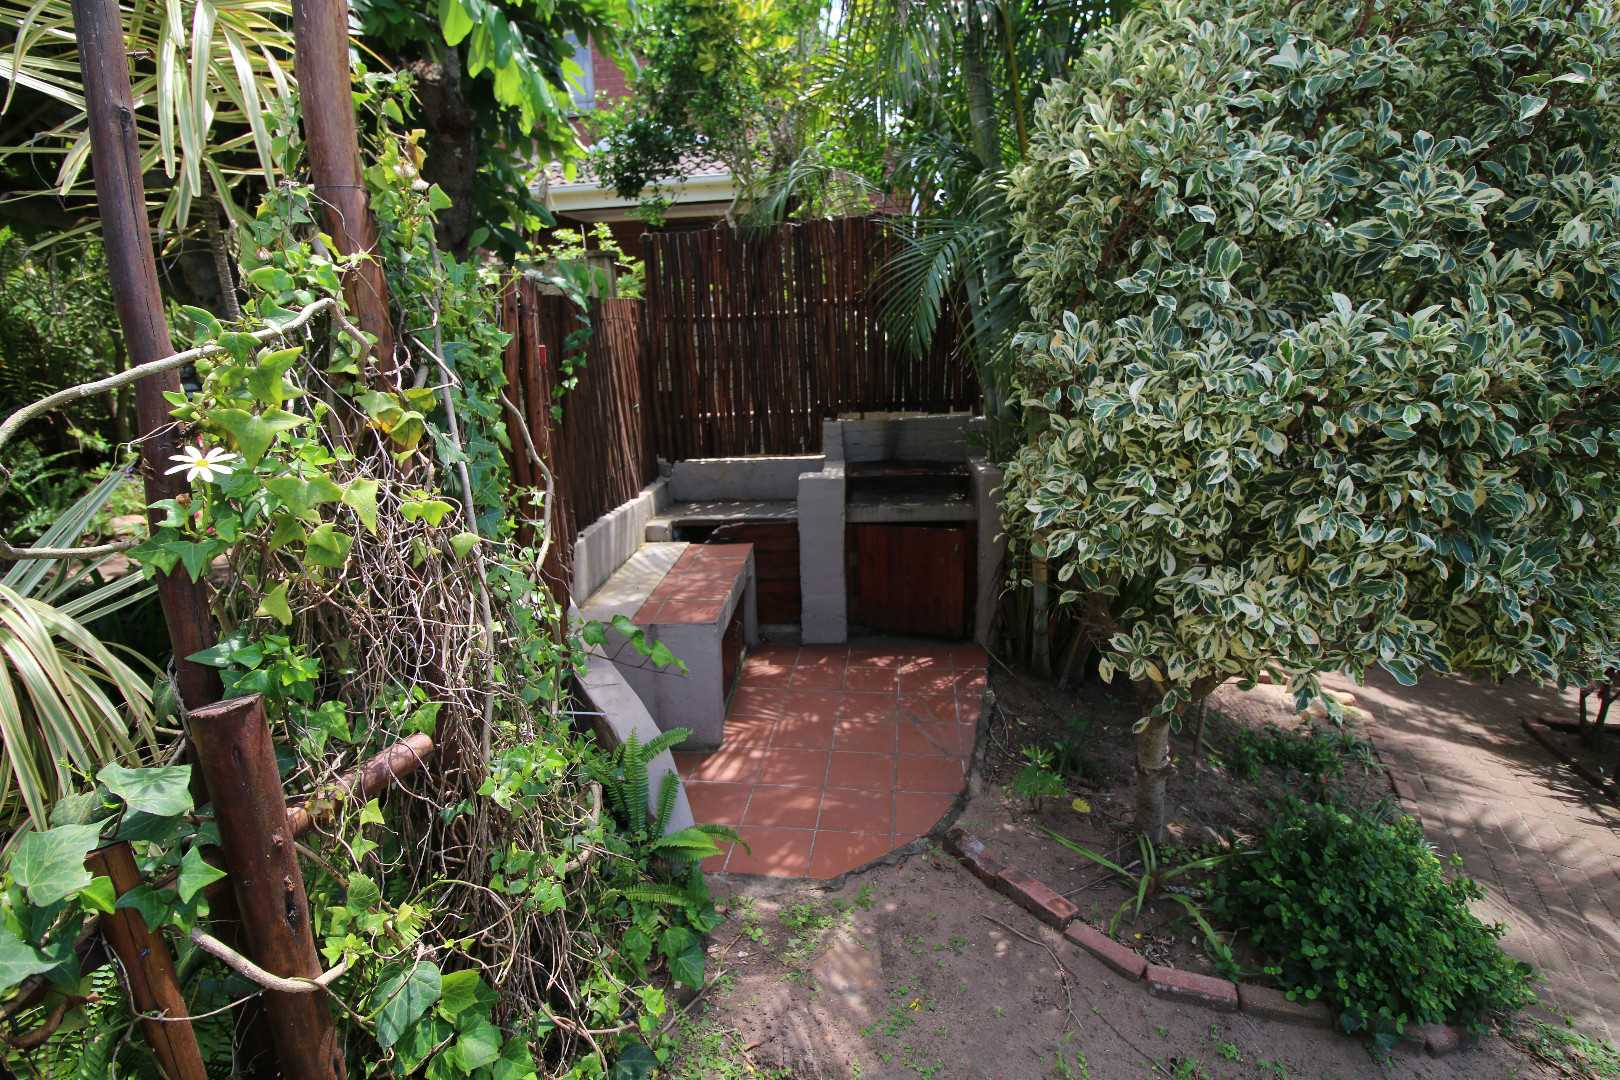 Braai facility in garden